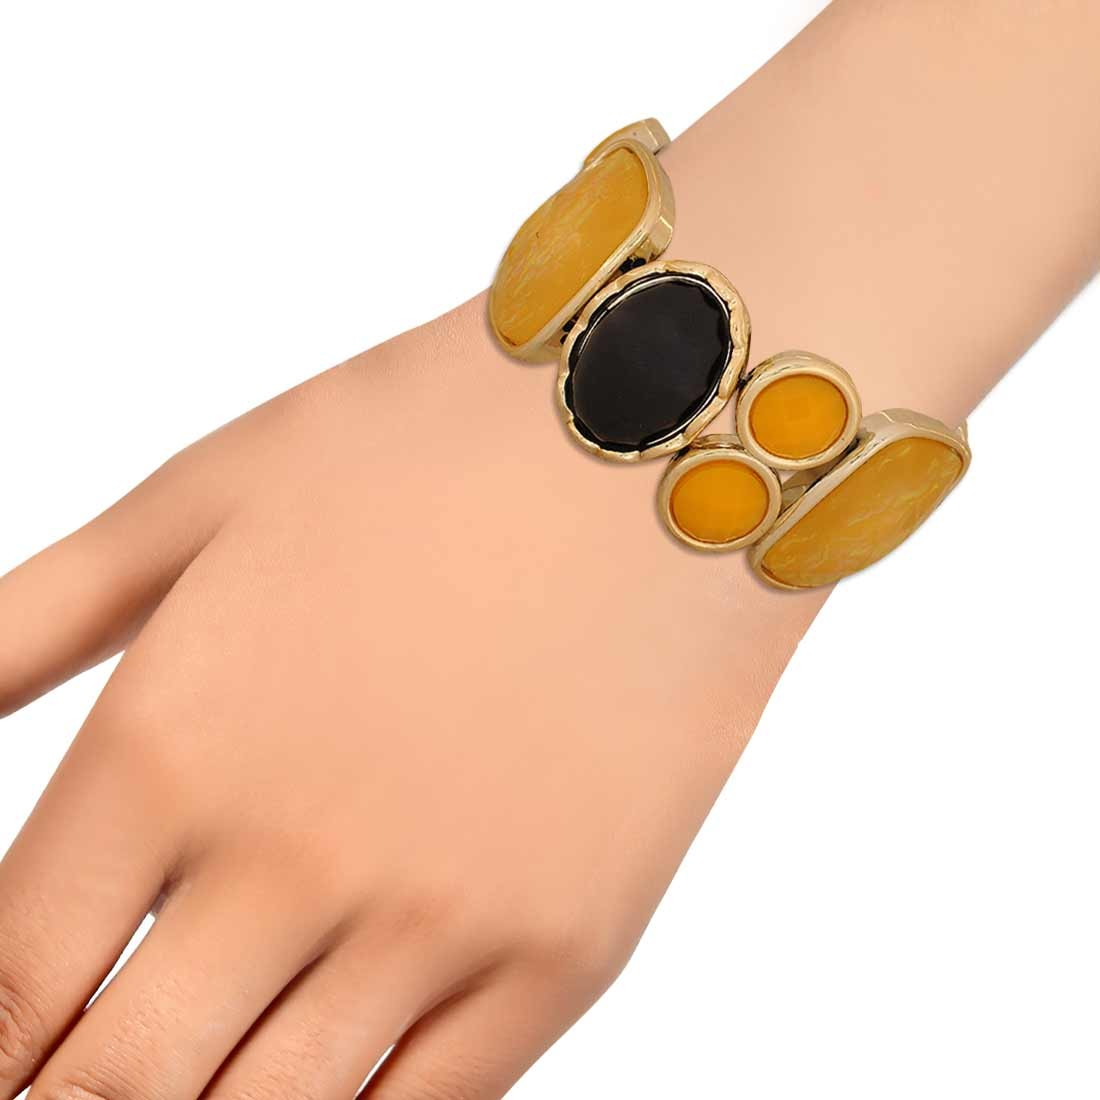 Bright Yellow Black in-Trend Adjustable Reunion Bracelet Alloy Maayra MY7762